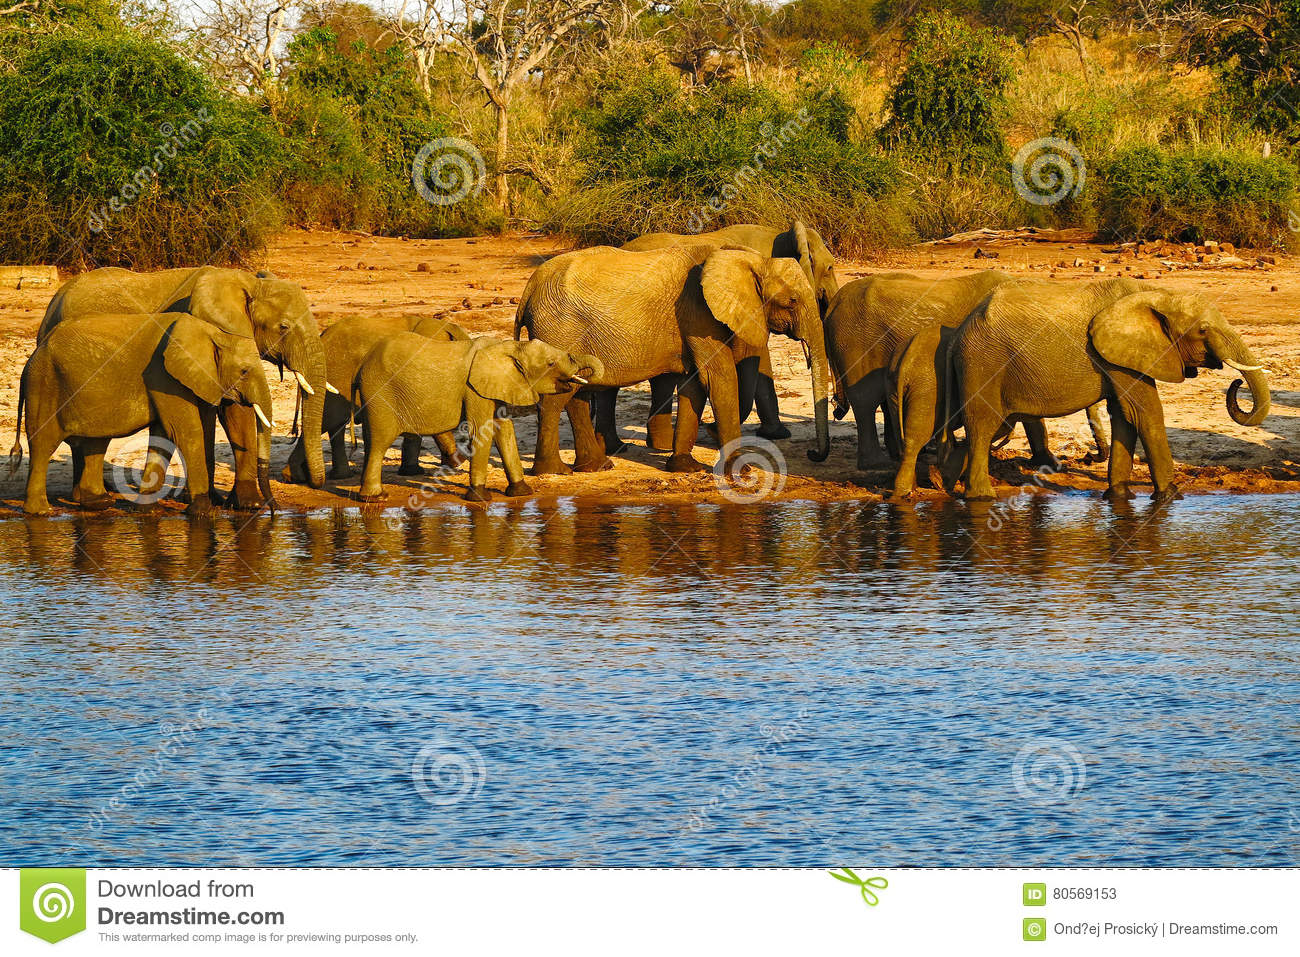 A herd of African elephants drinking at a waterhole lifting their trunks, Chobe National park, Botswana, Africa. Wildlife scene wi